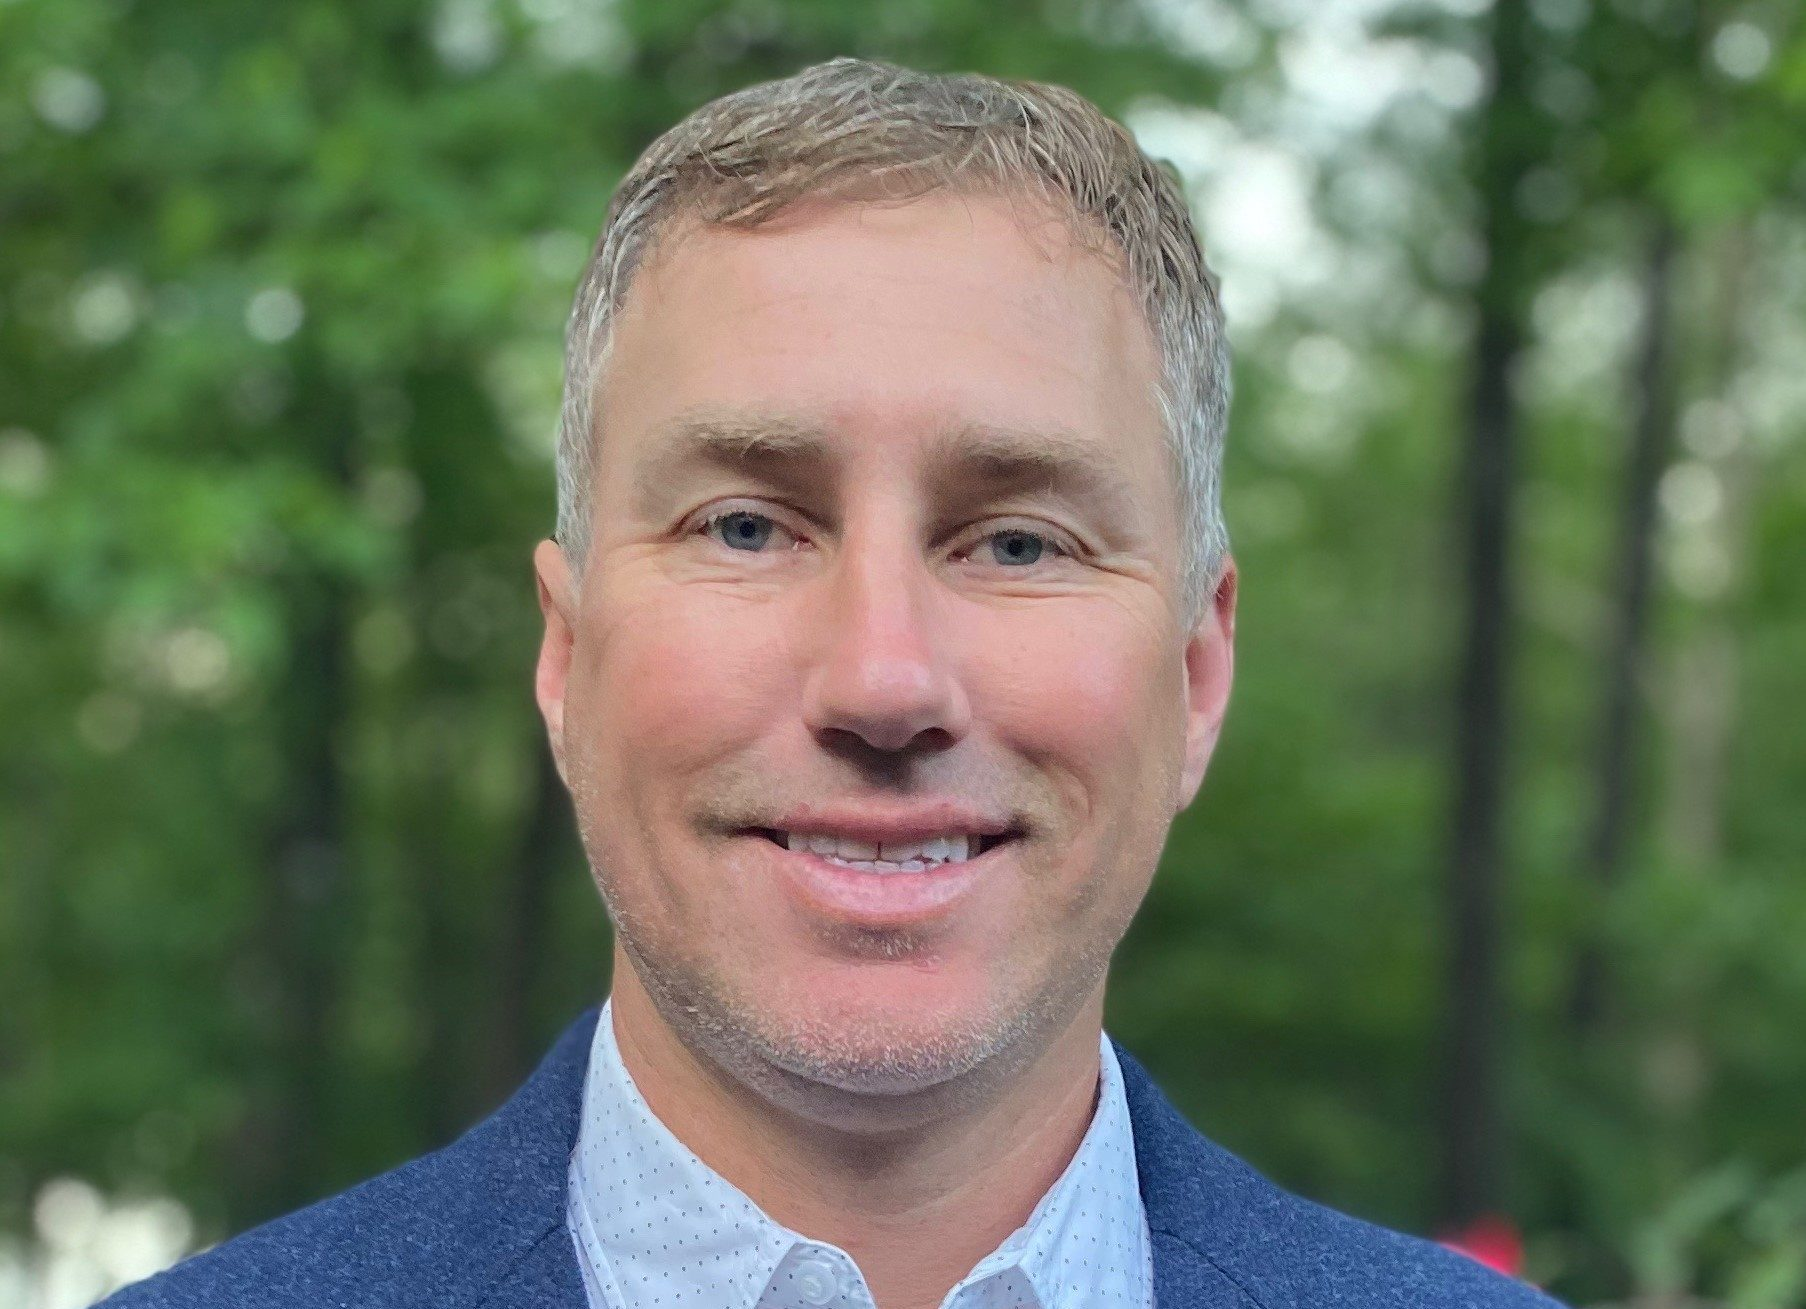 Milliken & Company is pleased to announce that Benji Bagwell has been hired as vice president of sales and marketing for the specialty interiors business within the Textile Division.